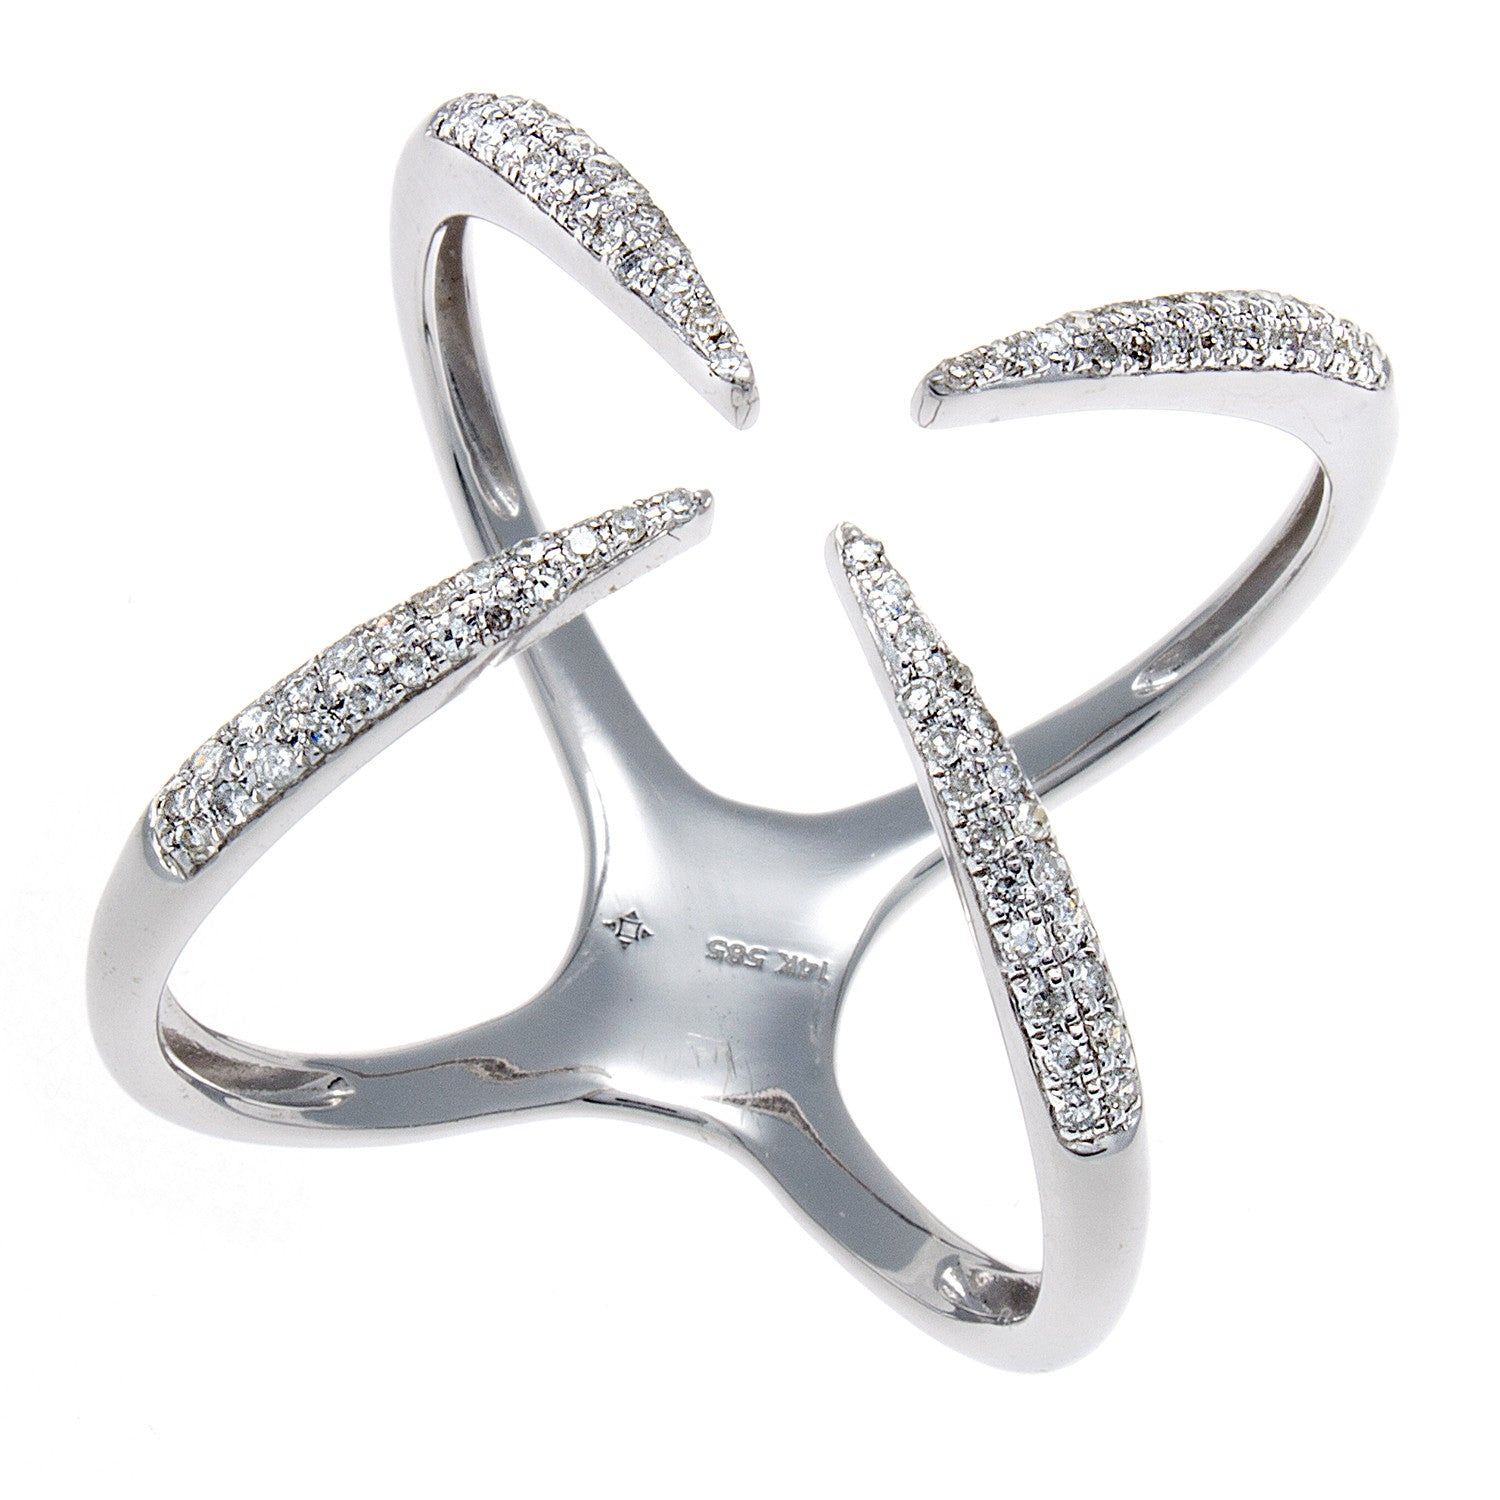 Diamond Open X White Gold  Ring-SOLD/CAN BE SPECIAL ORDERED WITH 4-6 WEEKS DELIVERY TIME FRAME